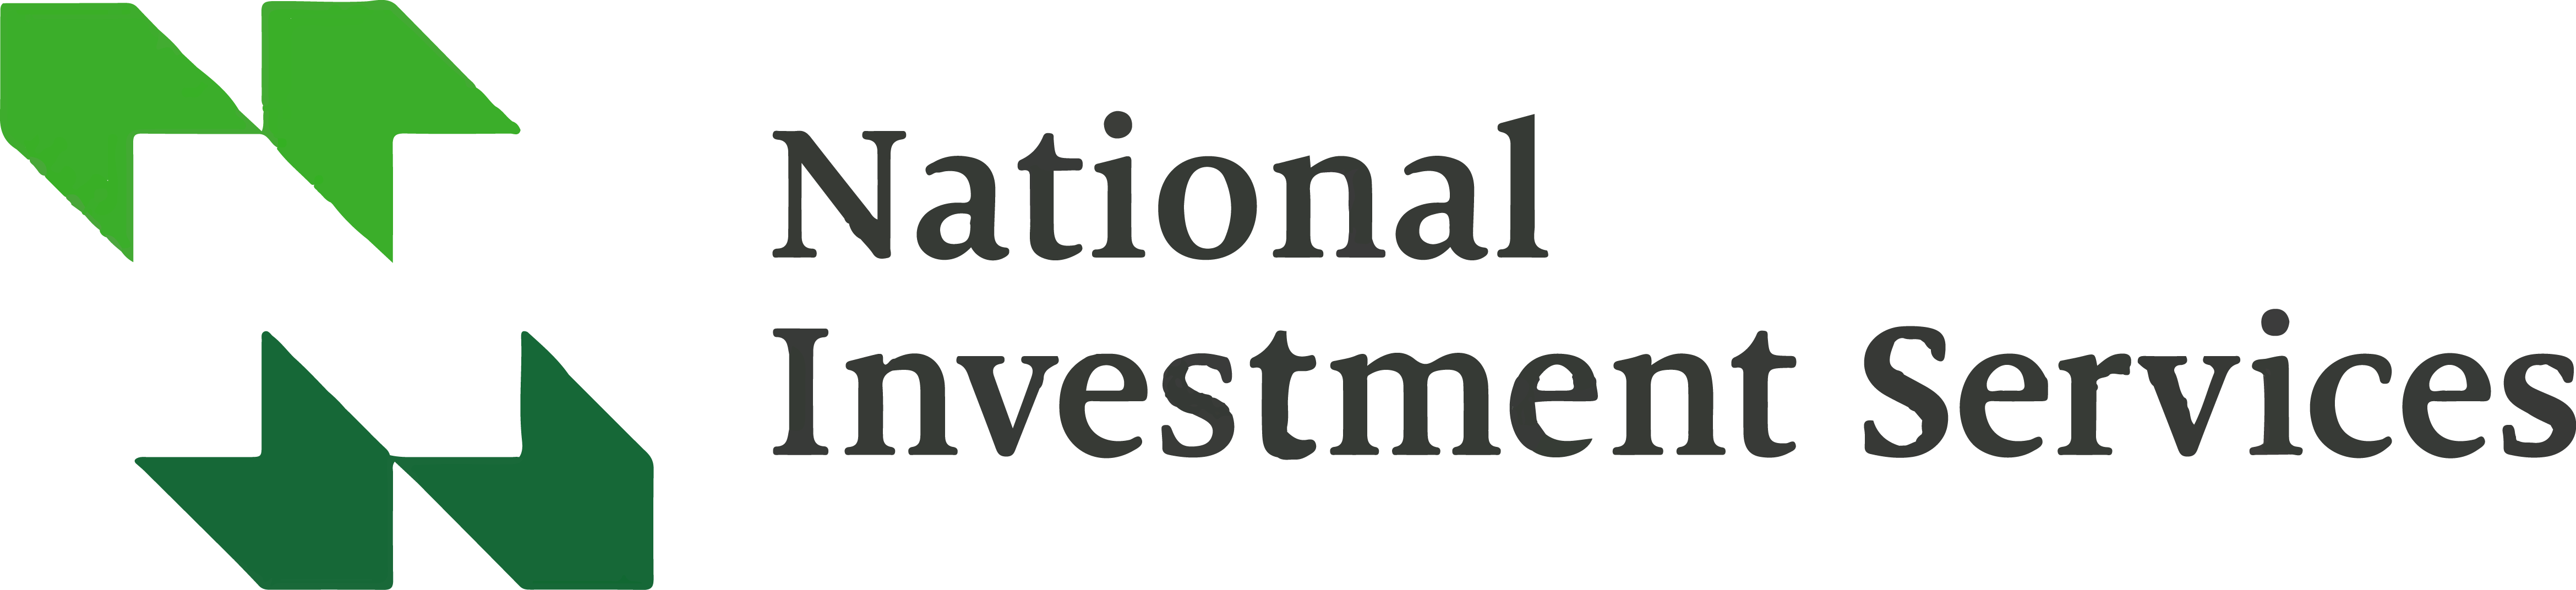 National Investment Services Logo